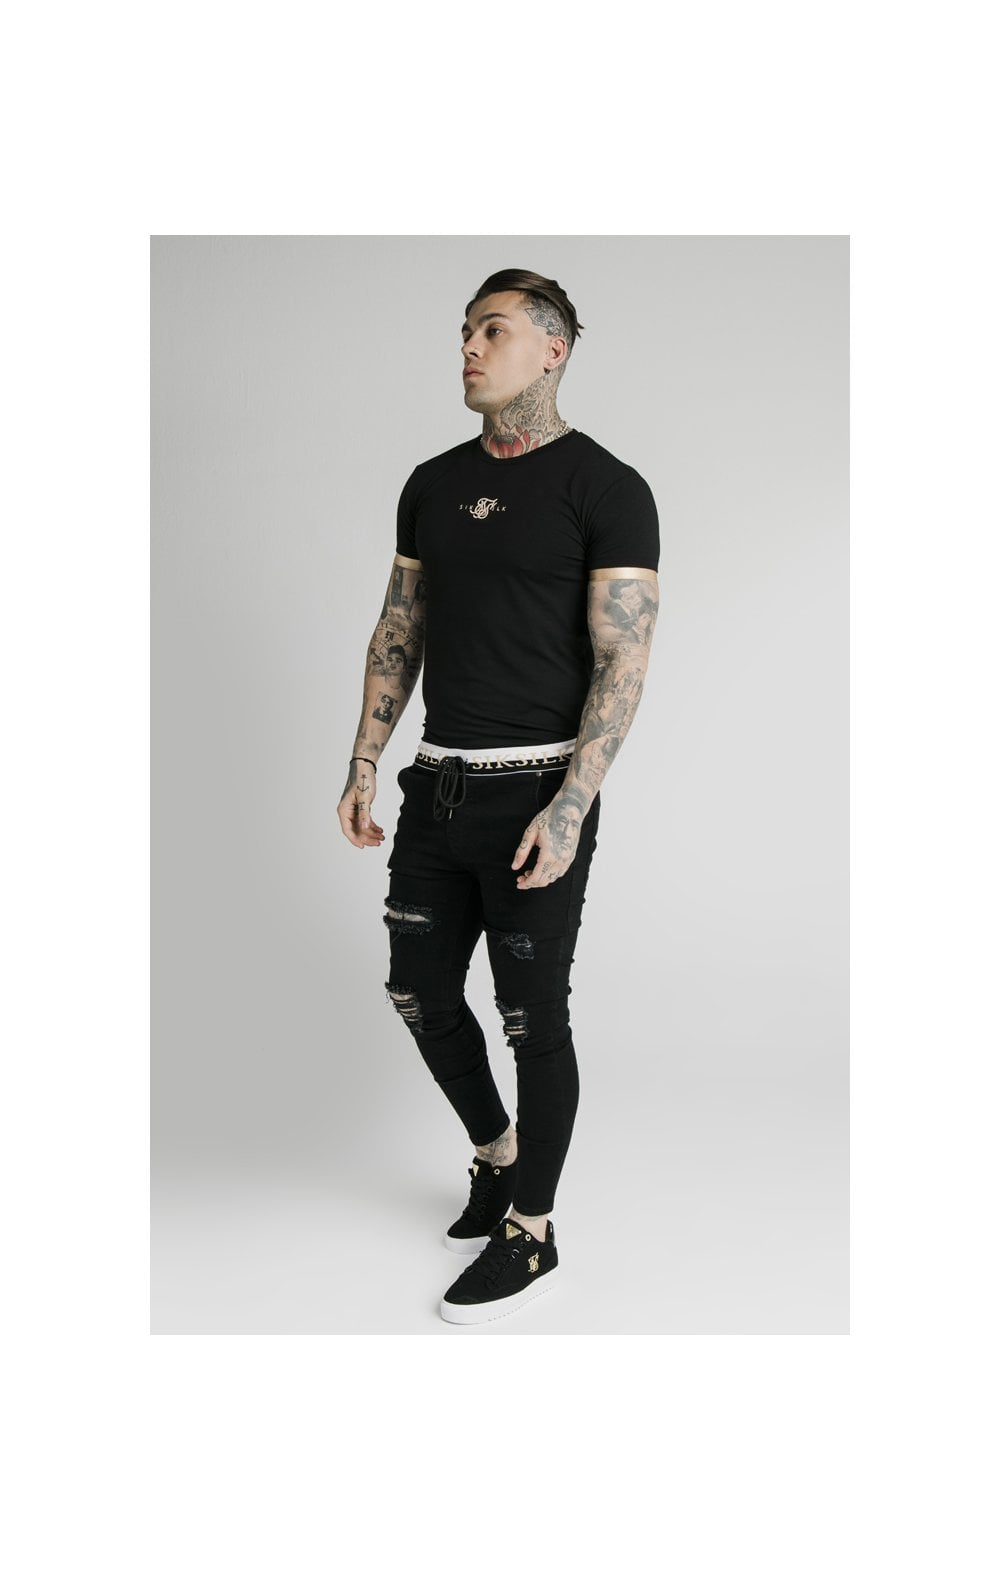 SikSilk S/S Inset Cuff Gym Tee – Black & Gold (8)